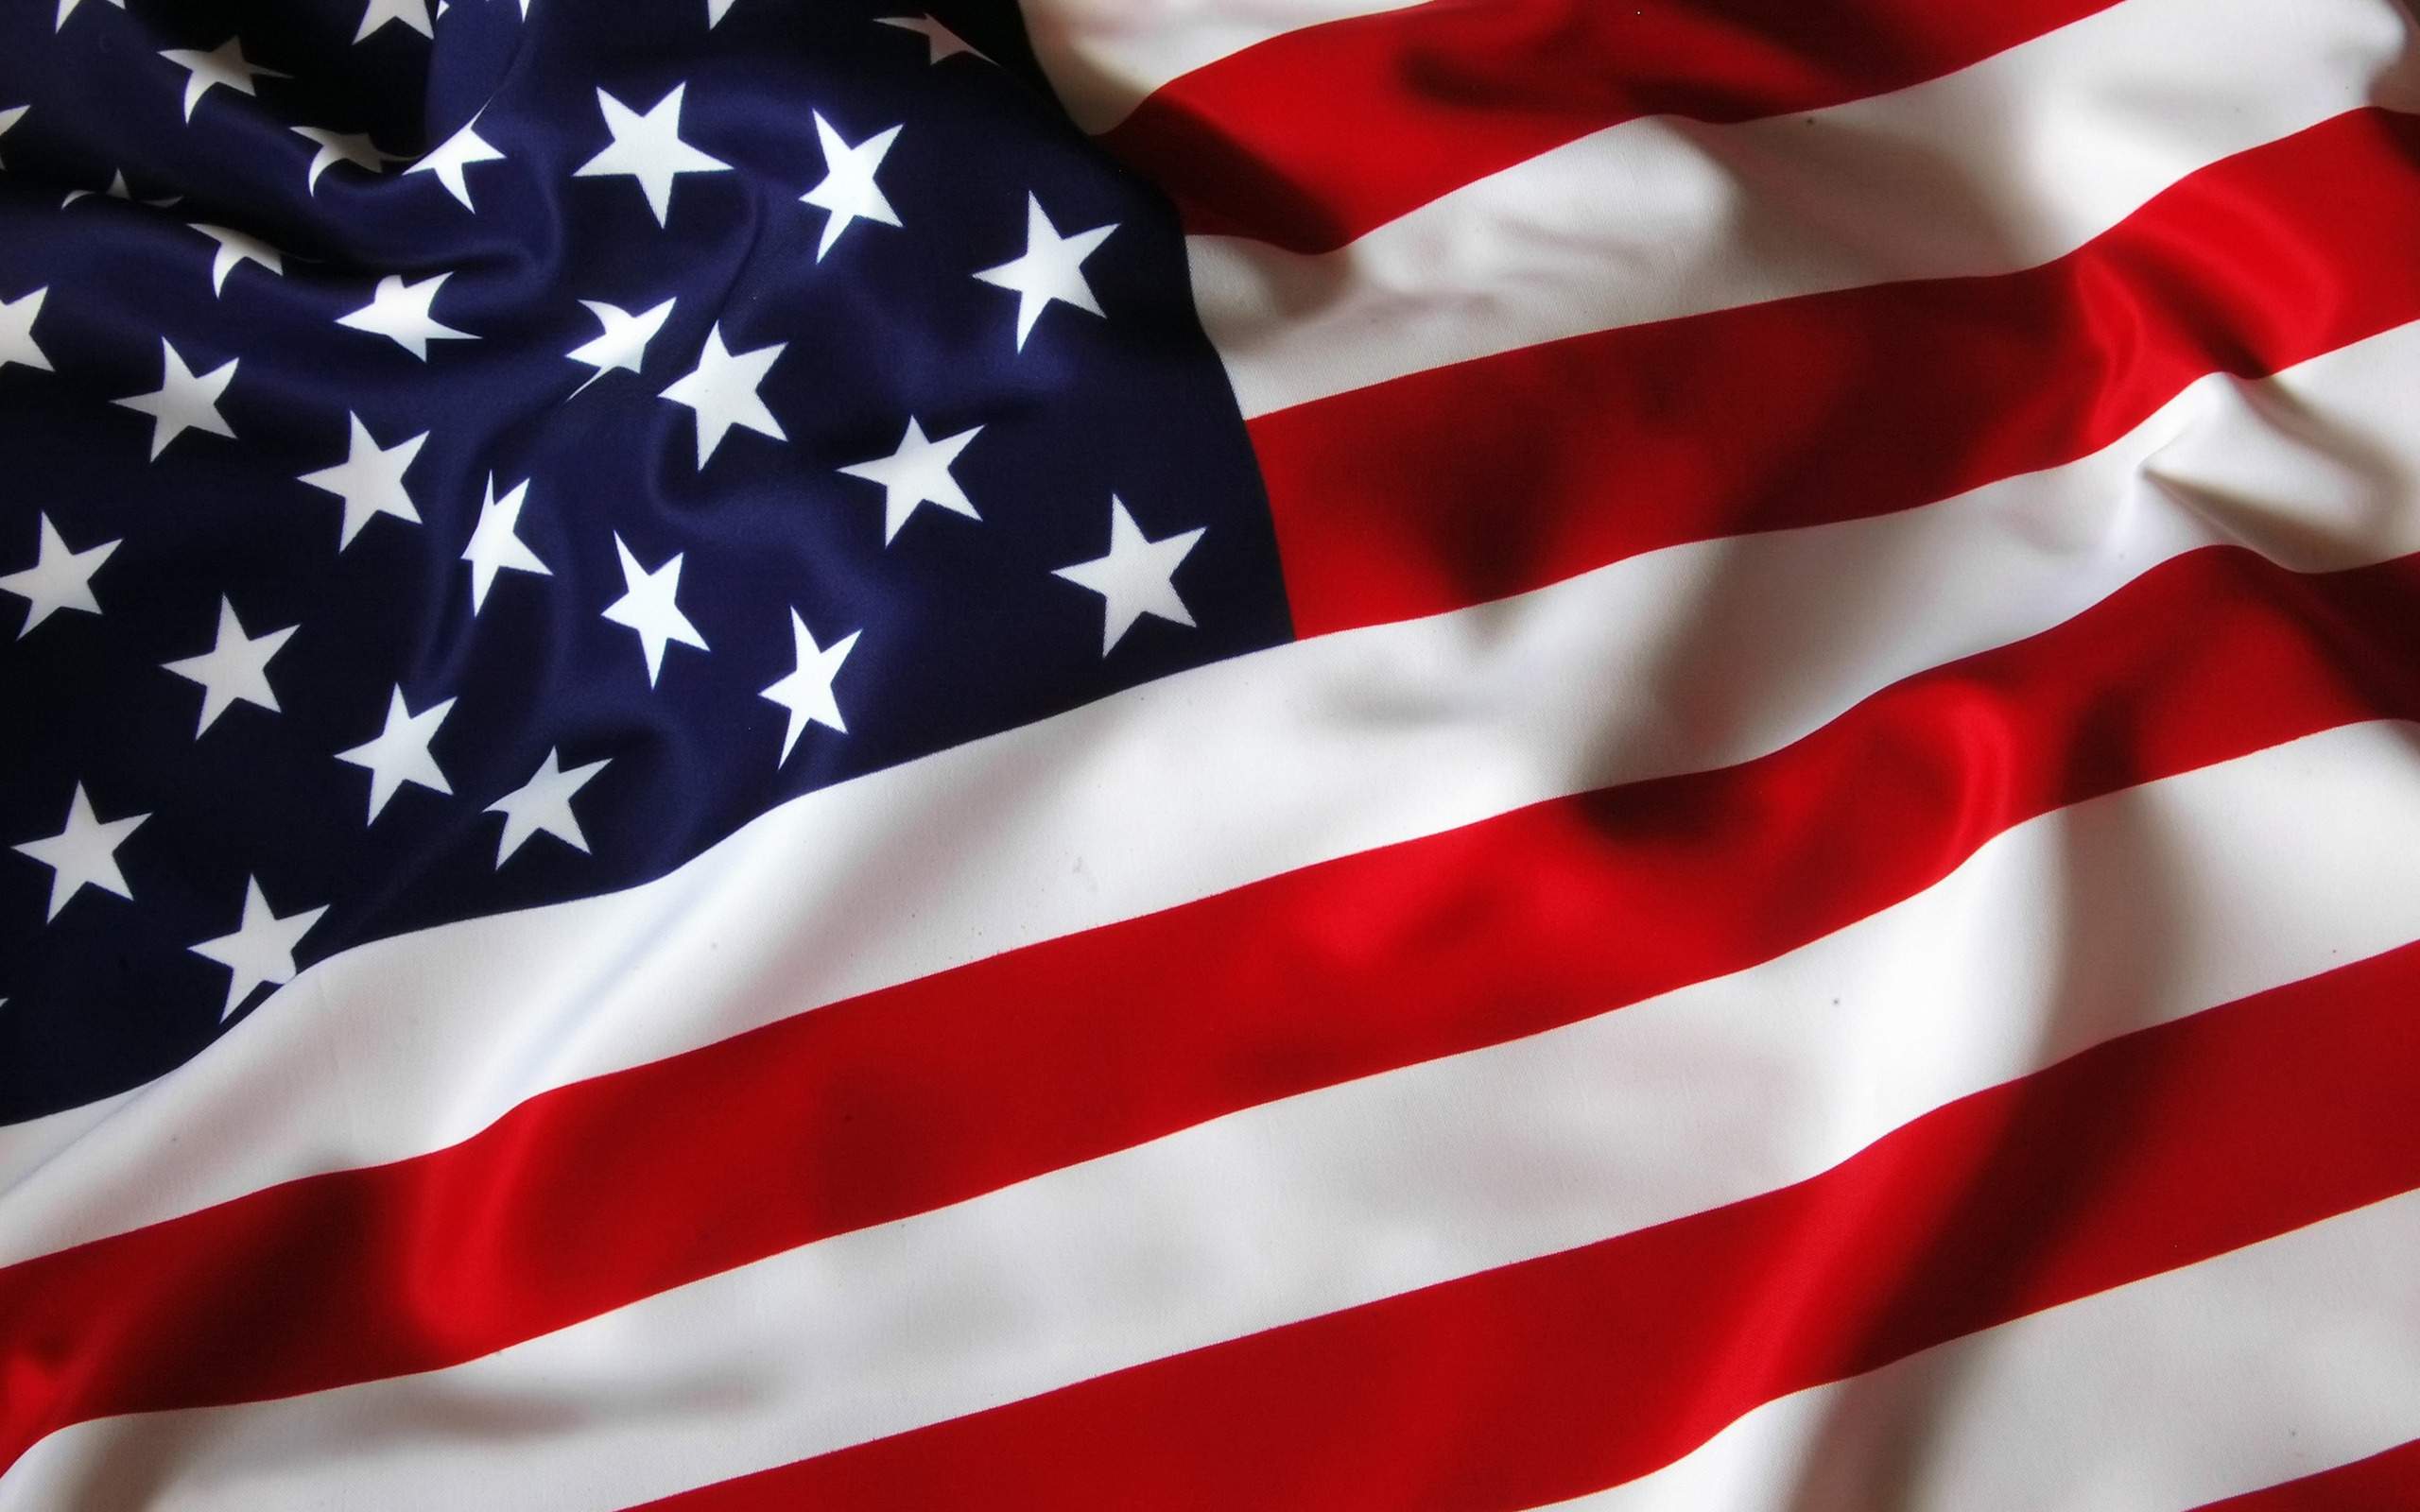 In the United States, we refer to the 4th of July is referred to as our Independence Day. A federal holiday, it commemorates the Declaration of Independence, adopted by the […]